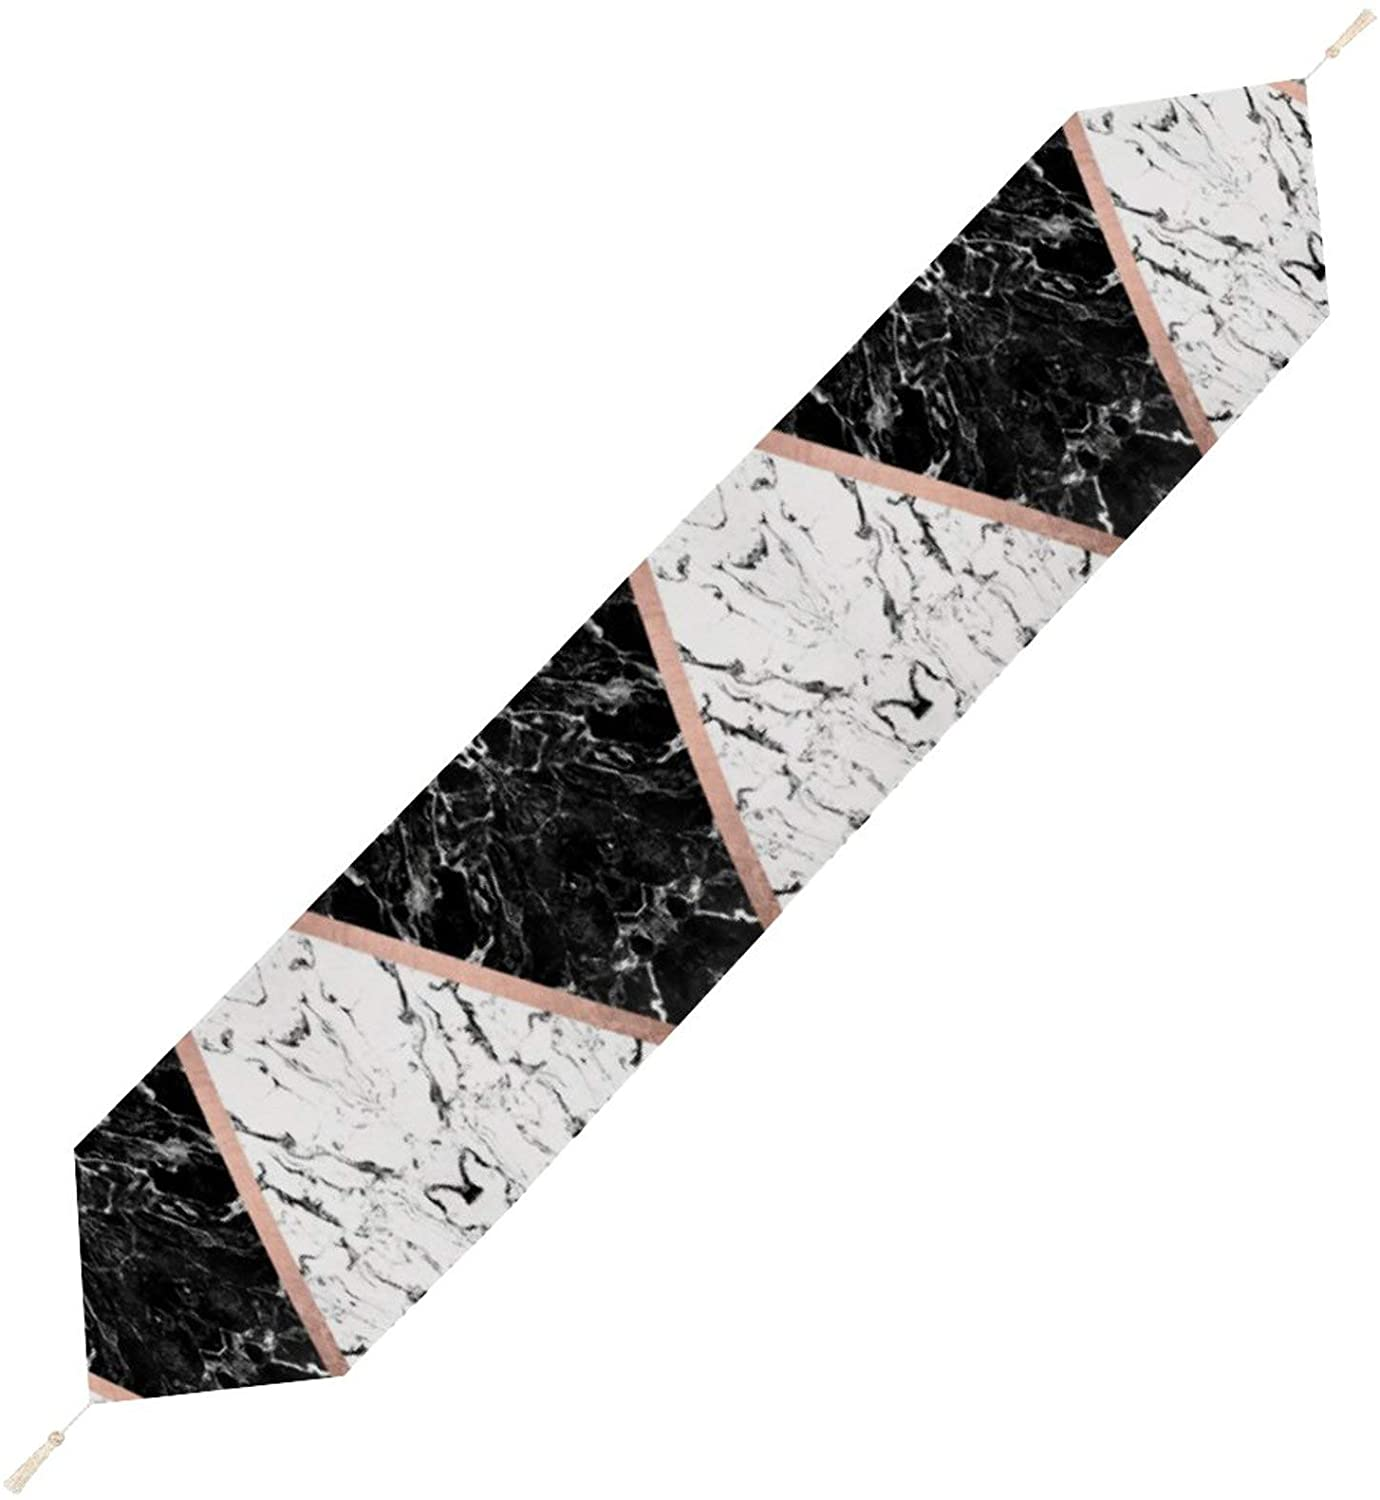 Chic Black White Marble Color Block Rose Gold Table Runner 13''x90'' Easy to Clean Non-Slip Heat Resistant Modern Farmhouse Table Runner for Dinner Dining Kitchen Table Thanksgiving Christmas Party